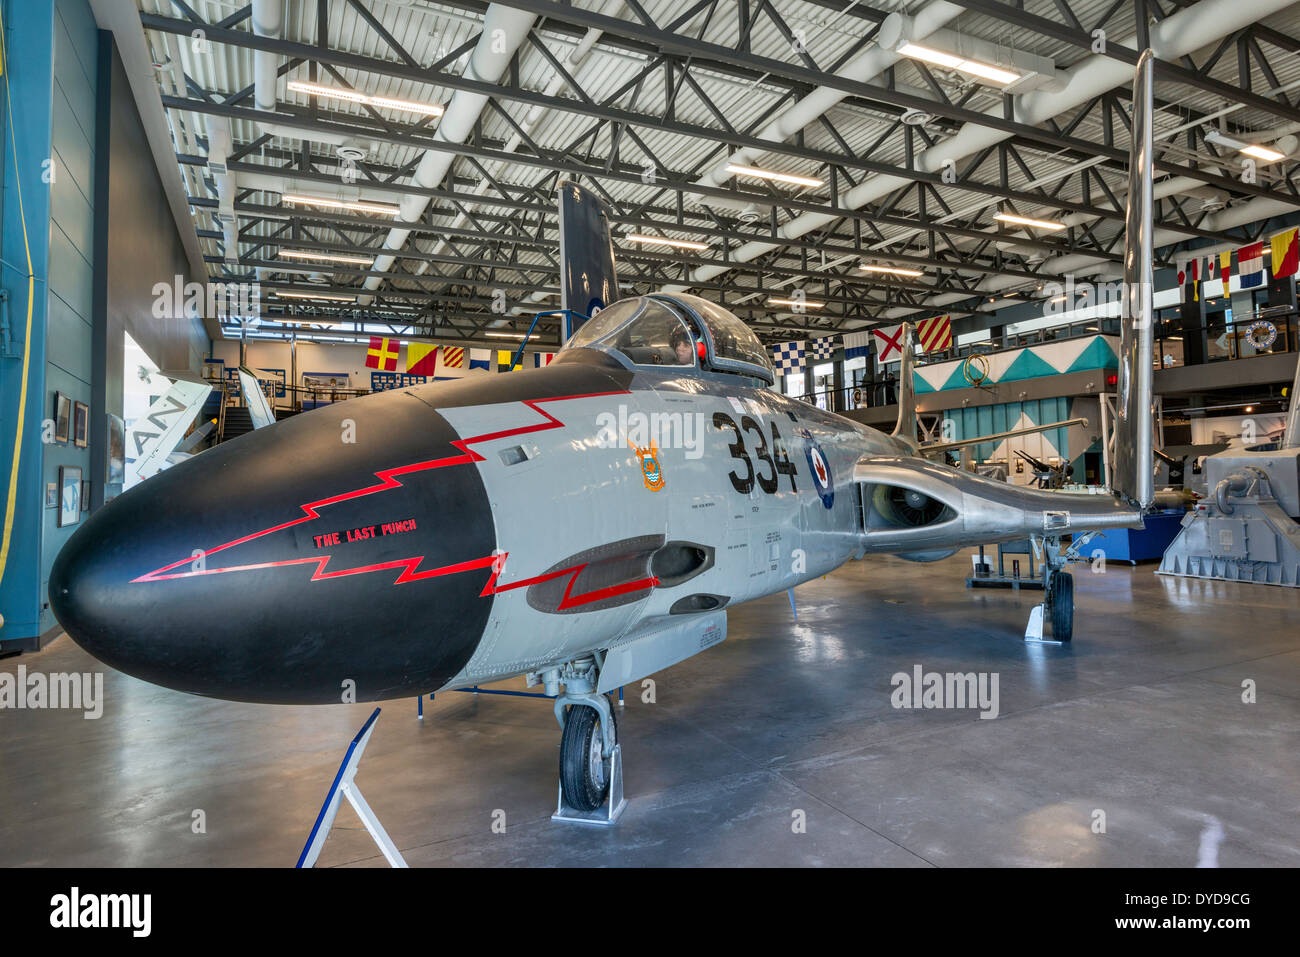 McDonnell F2H Banshee, jet fighter aircraft at Naval Museum of Alberta section of The Military Museums, Calgary, Alberta, Canada - Stock Image